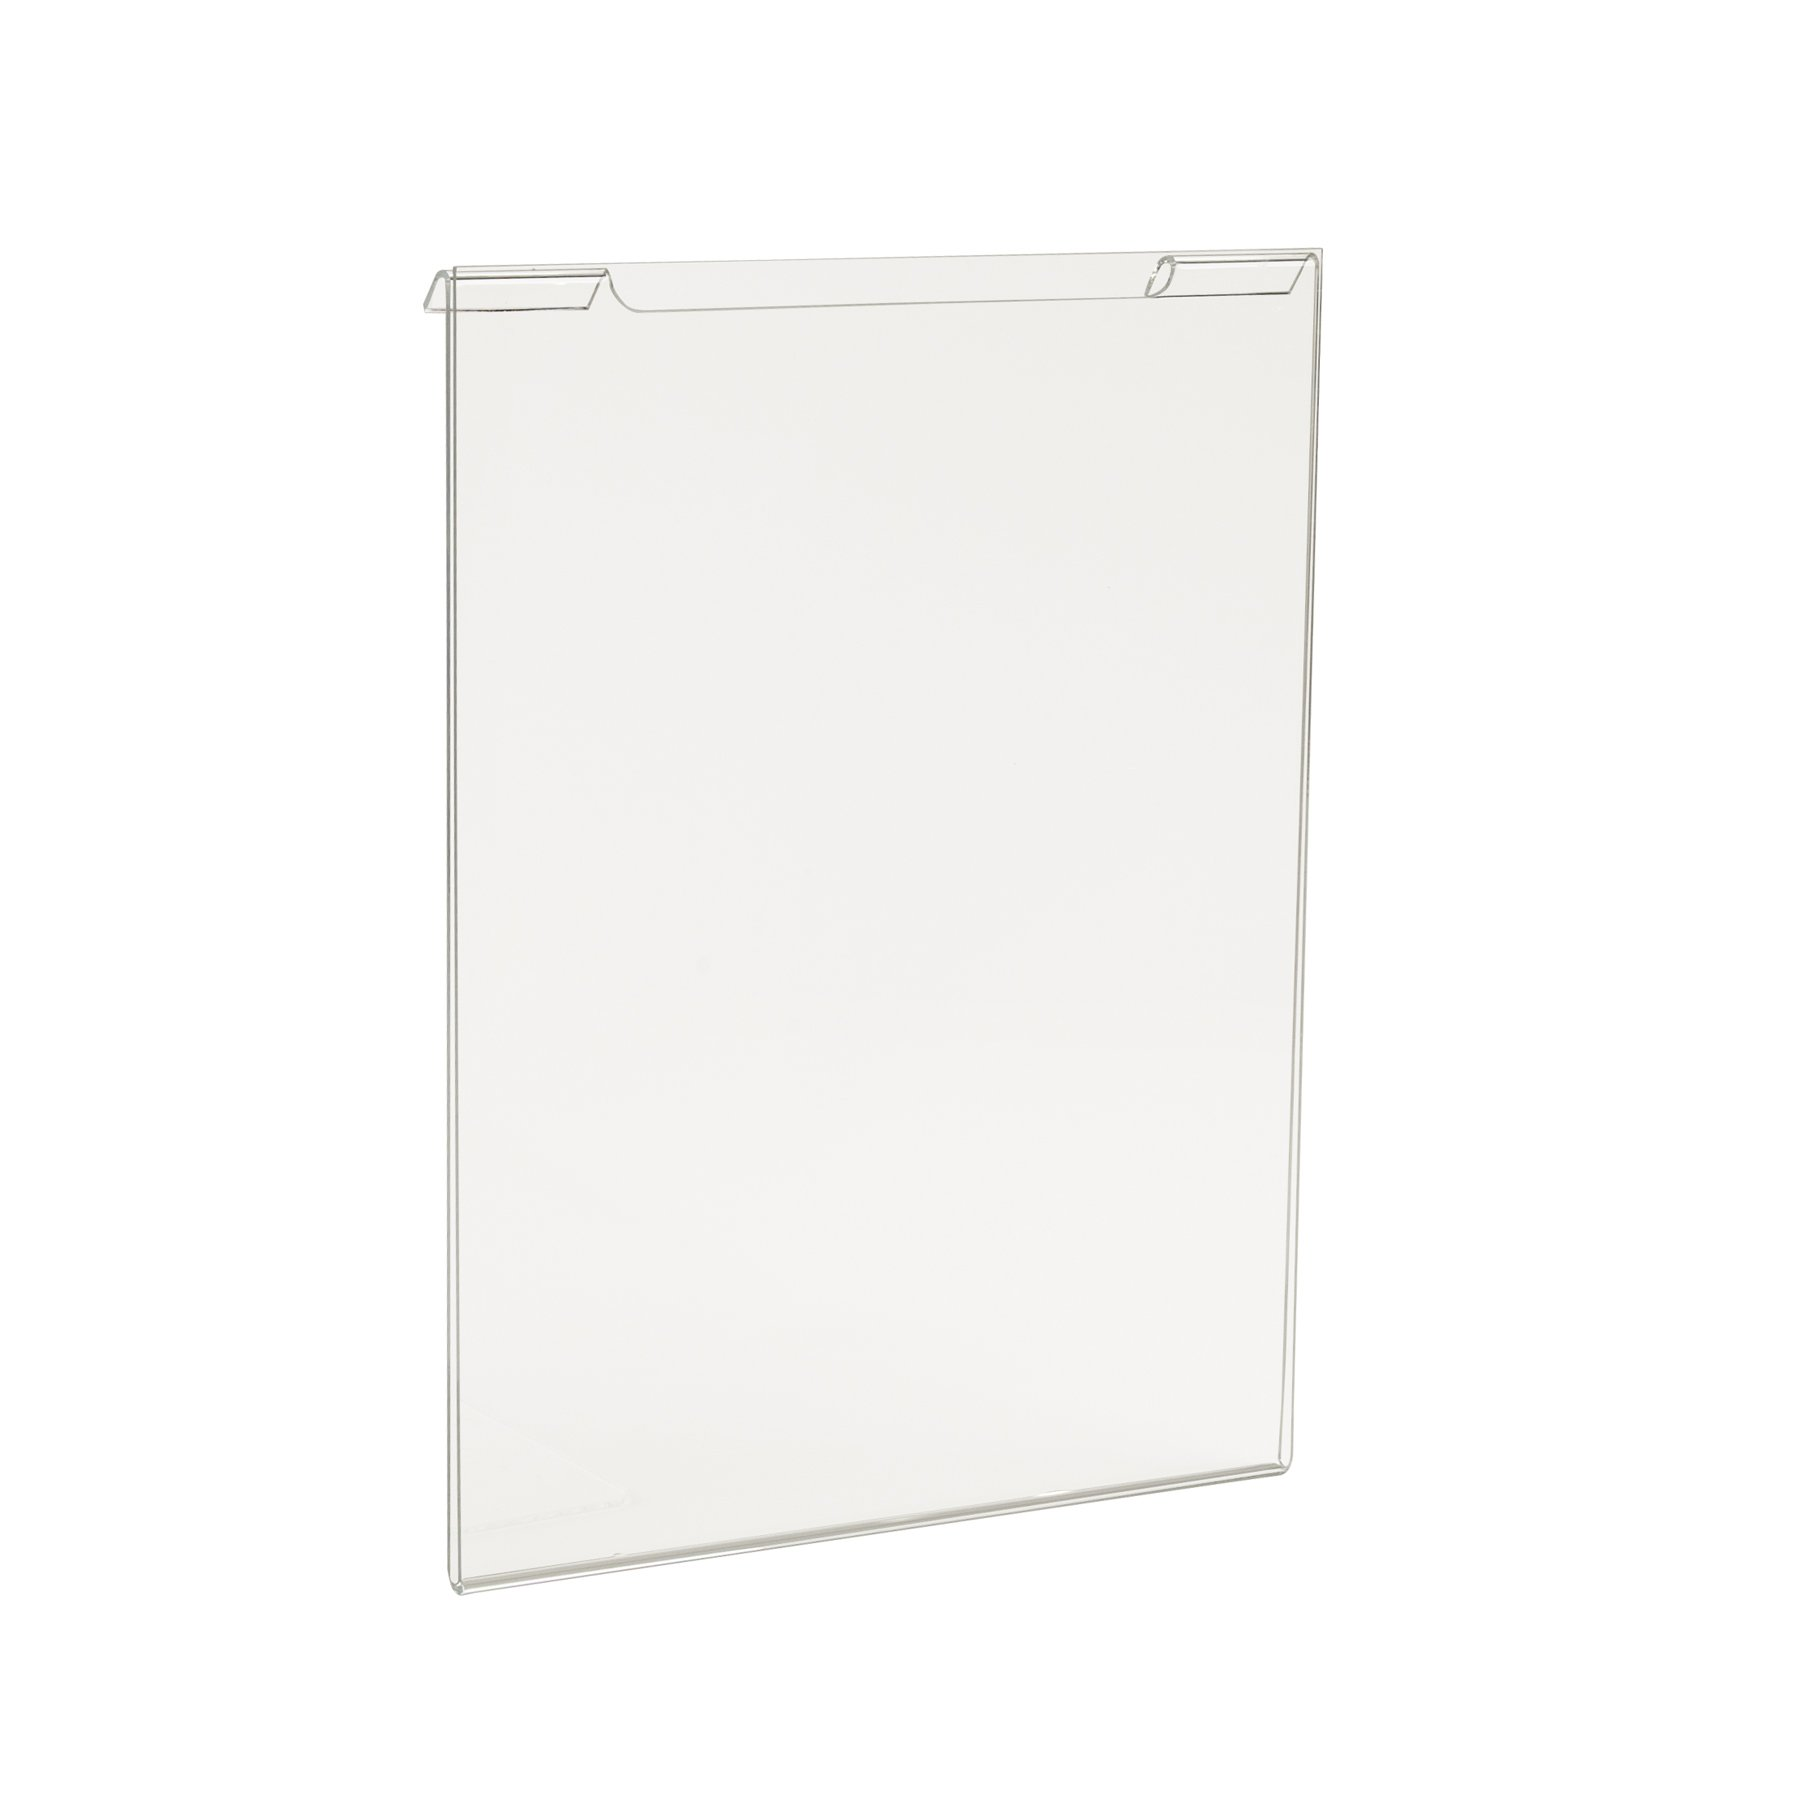 Econoco Commercial Acrylic Vertical for Slatwall/Gridwall, 8-1/2'' Width x 11'' Height (Pack of 24)